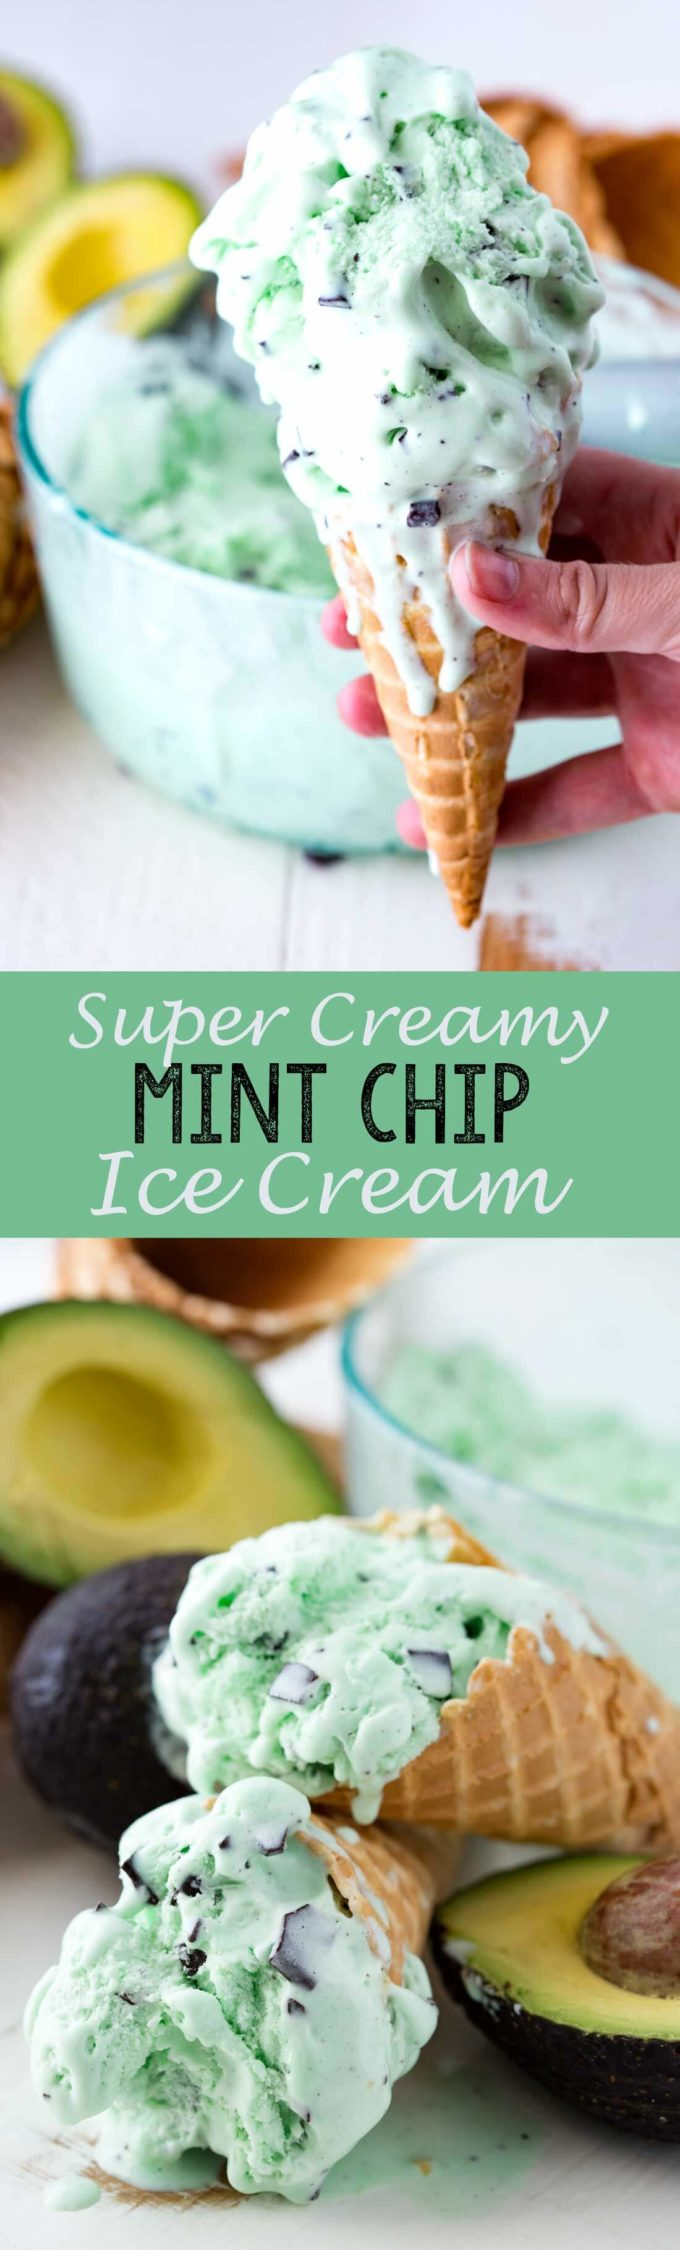 Super Creamy Mint Chip Ice Cream with secret ingredient is a fantastic refreshing way to cool down!